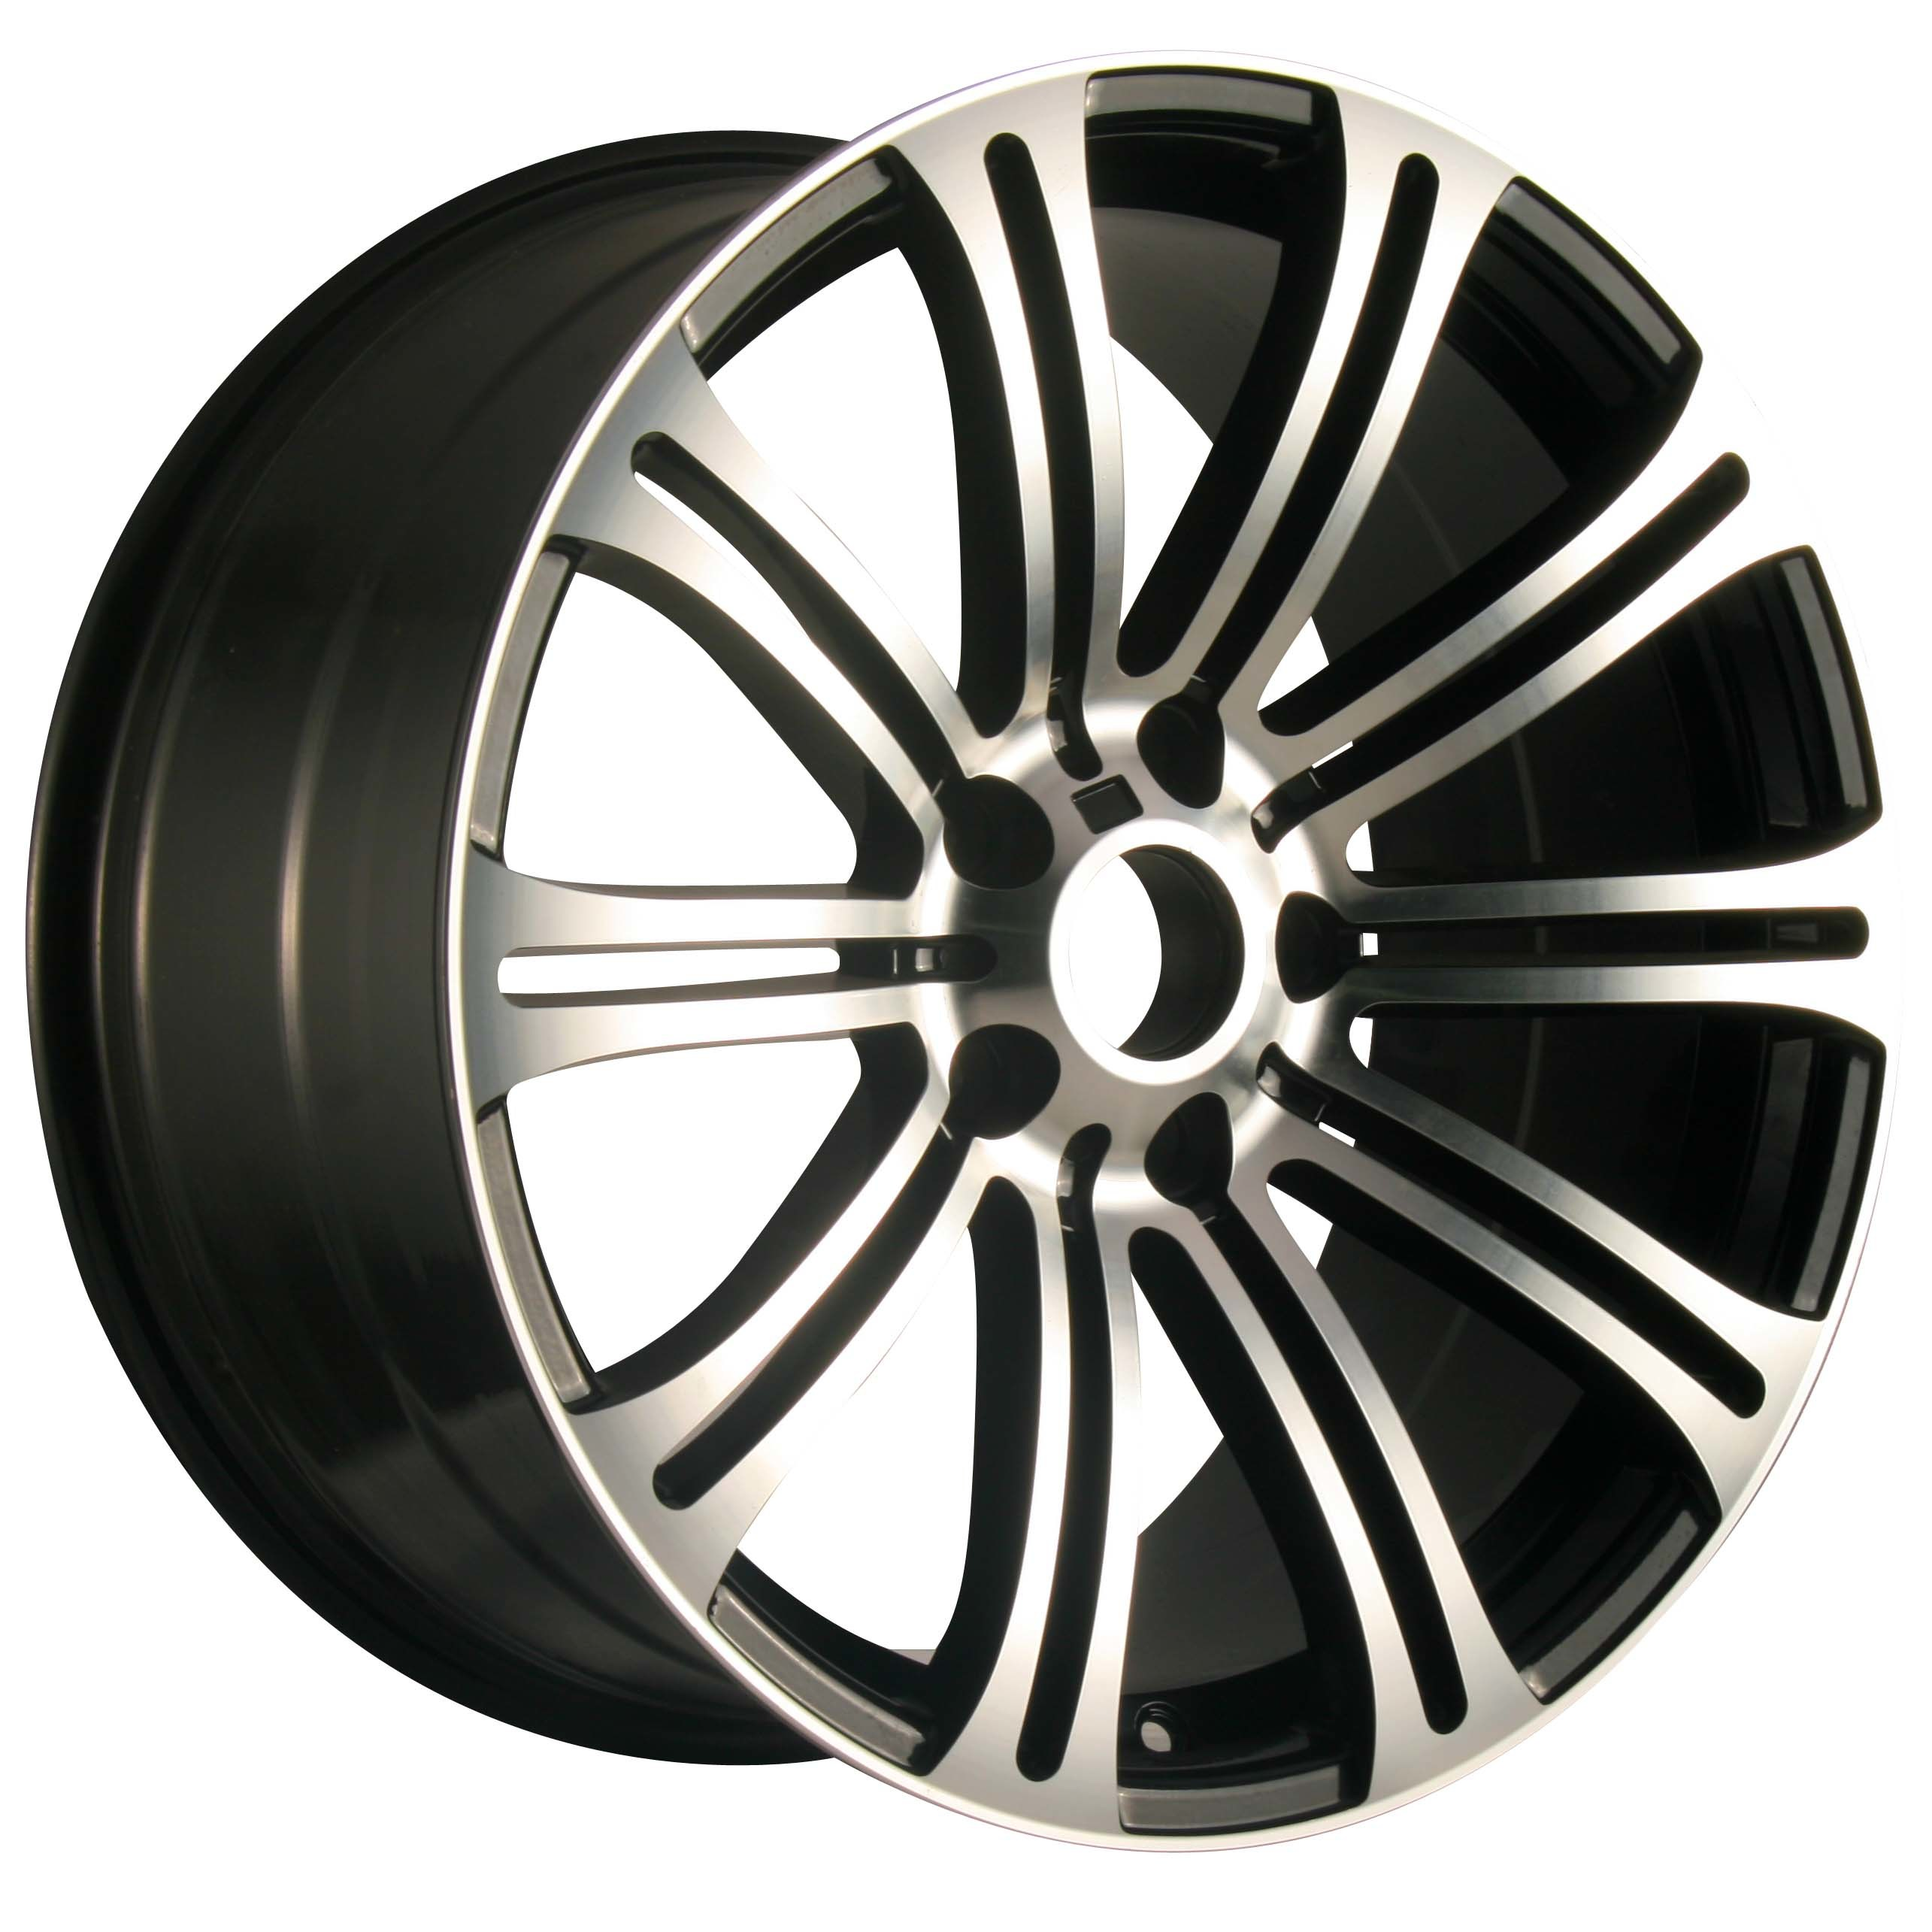 13inch-19inch Alloy Wheel Replica Wheel for Bmw′s